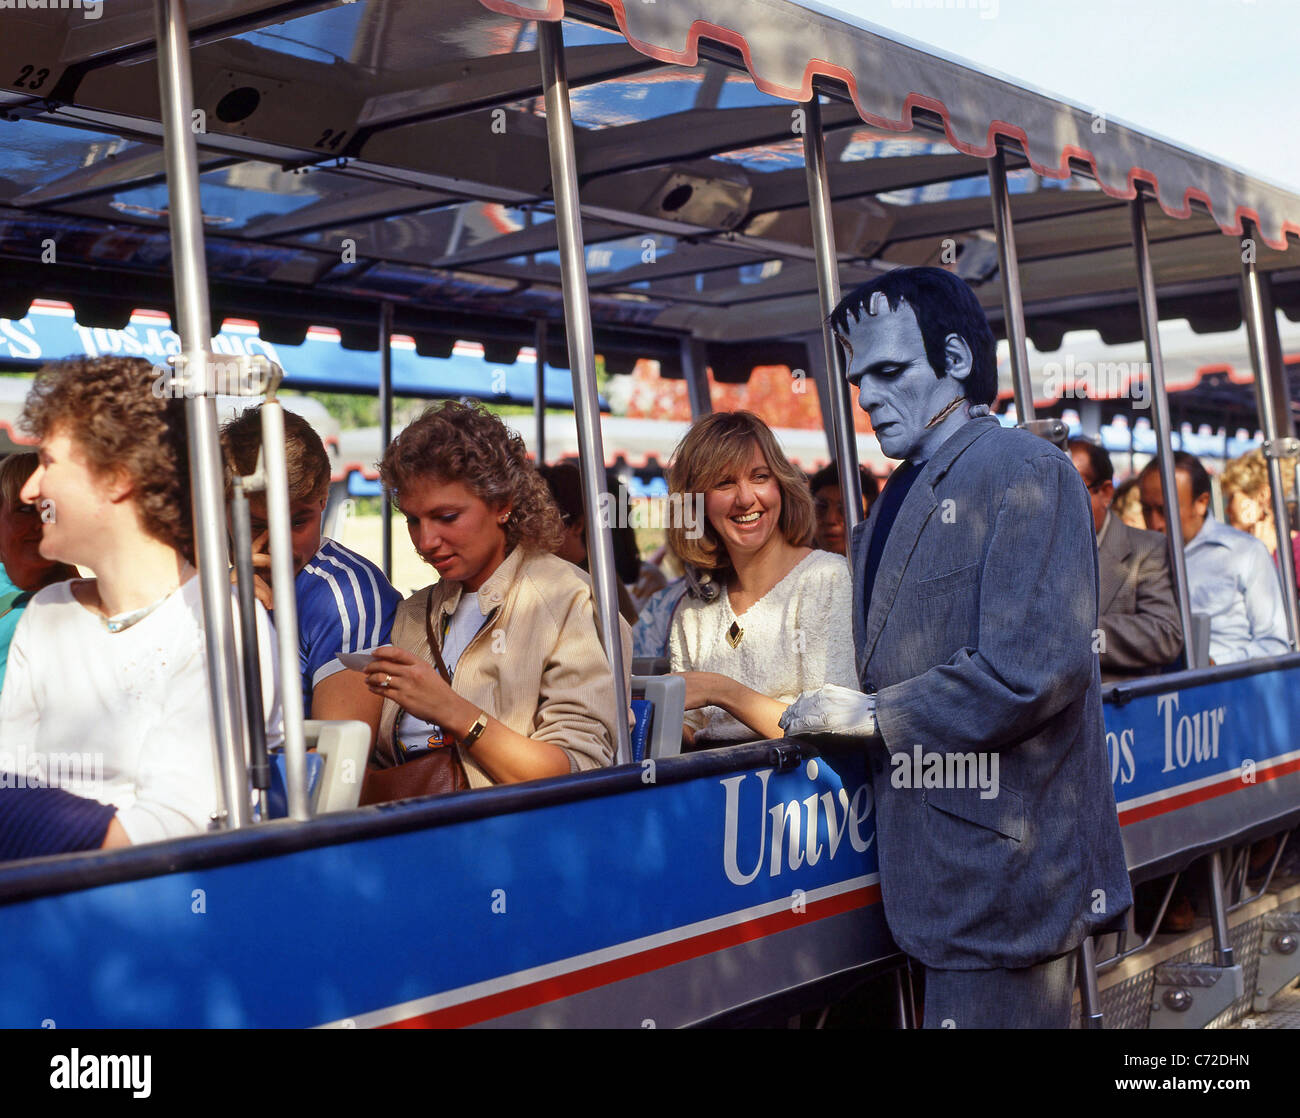 Tour train with Herman Munster, Universal Studios, Universal City, Los Angeles, California, United States of America - Stock Image